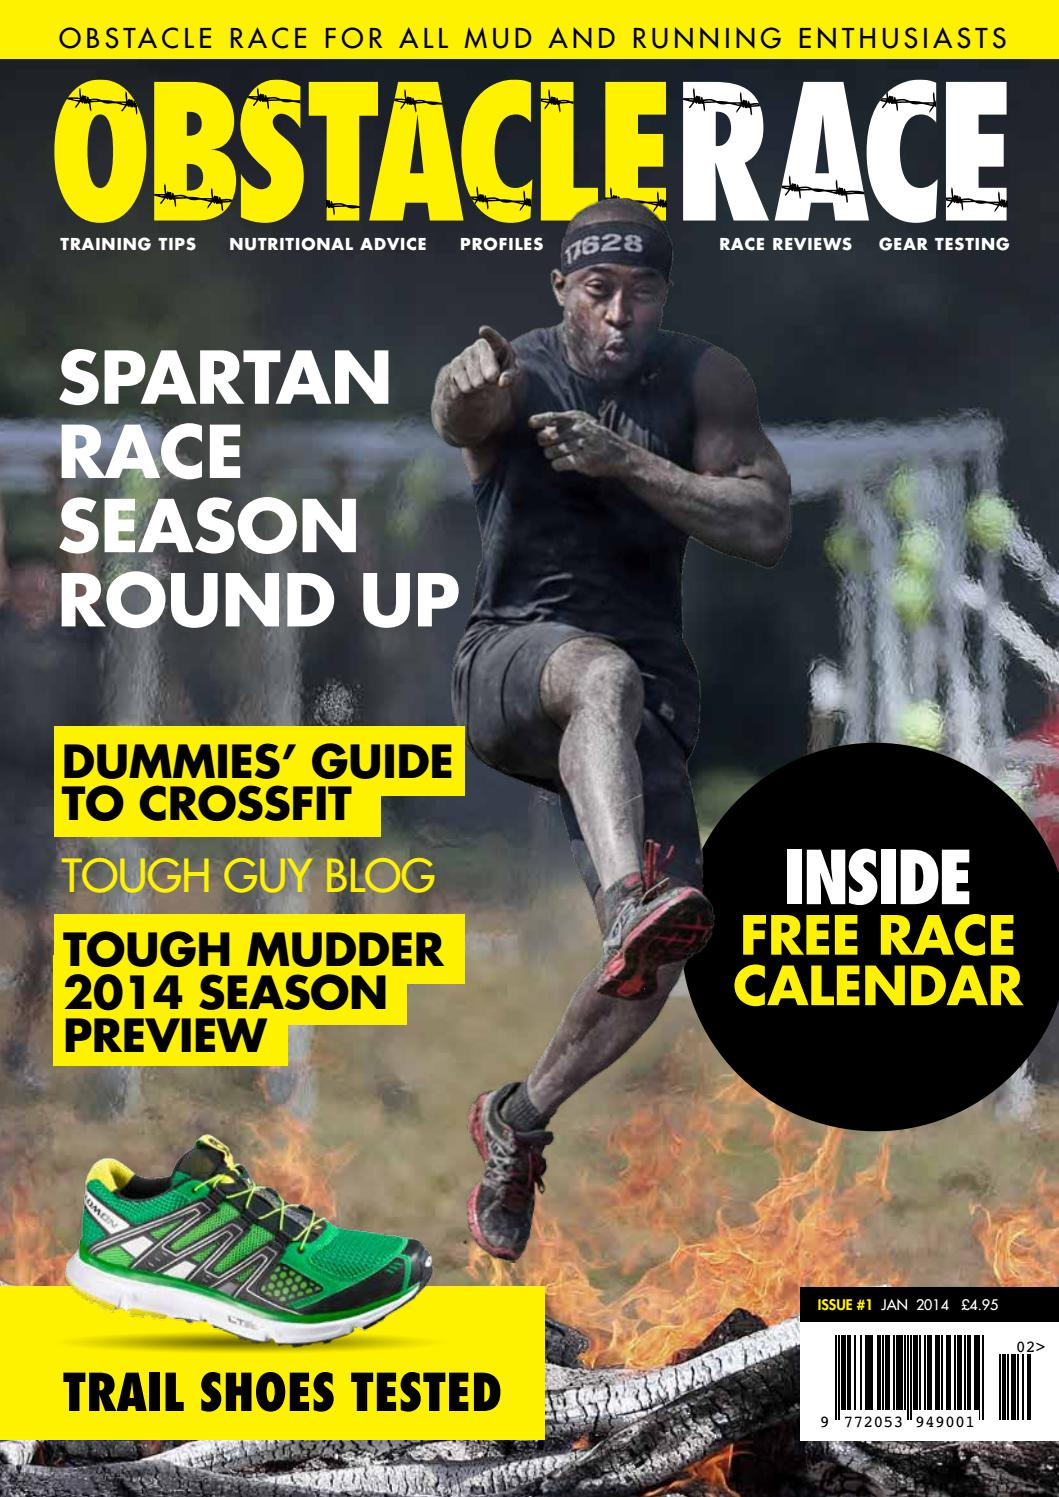 c585de38ec1 Obstacle Race Magazine Issue 1 by Obstacle Race Magazine - issuu